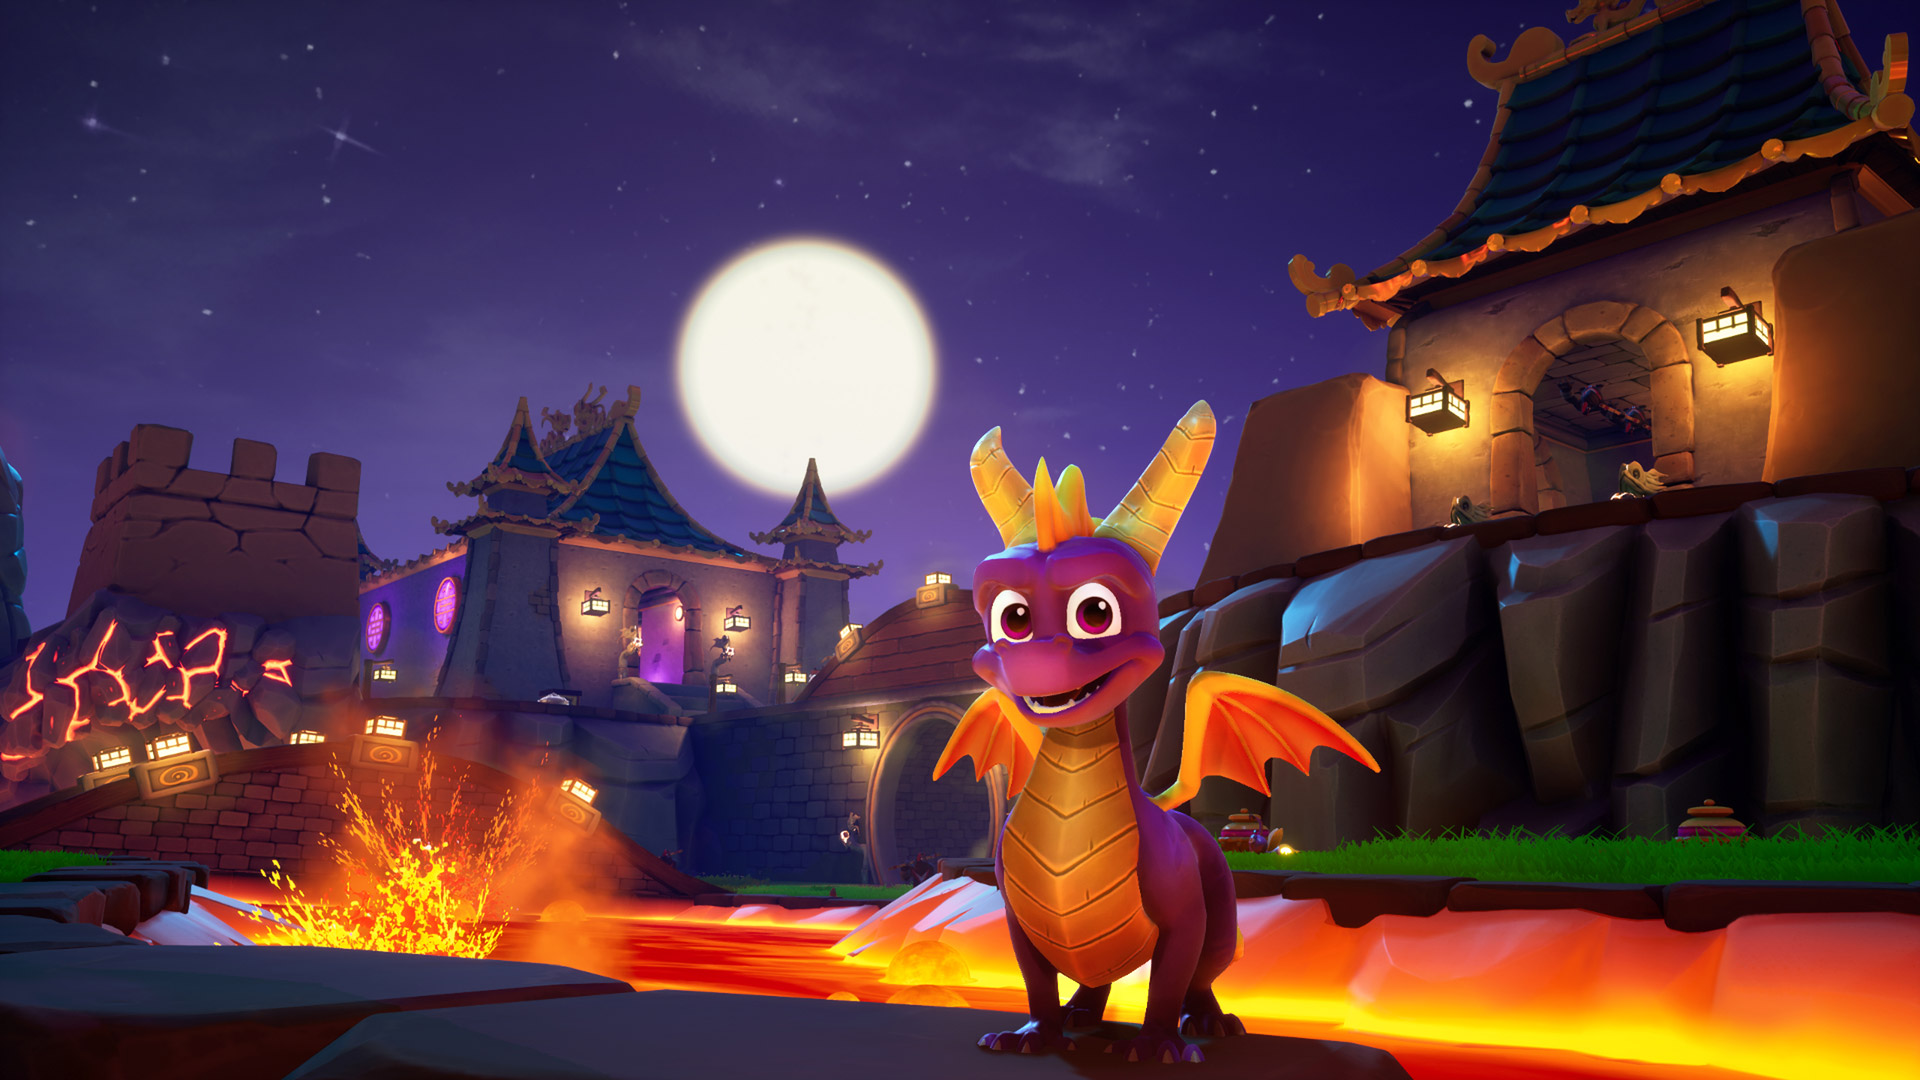 Free Spyro the Dragon Wallpaper in 1920x1080